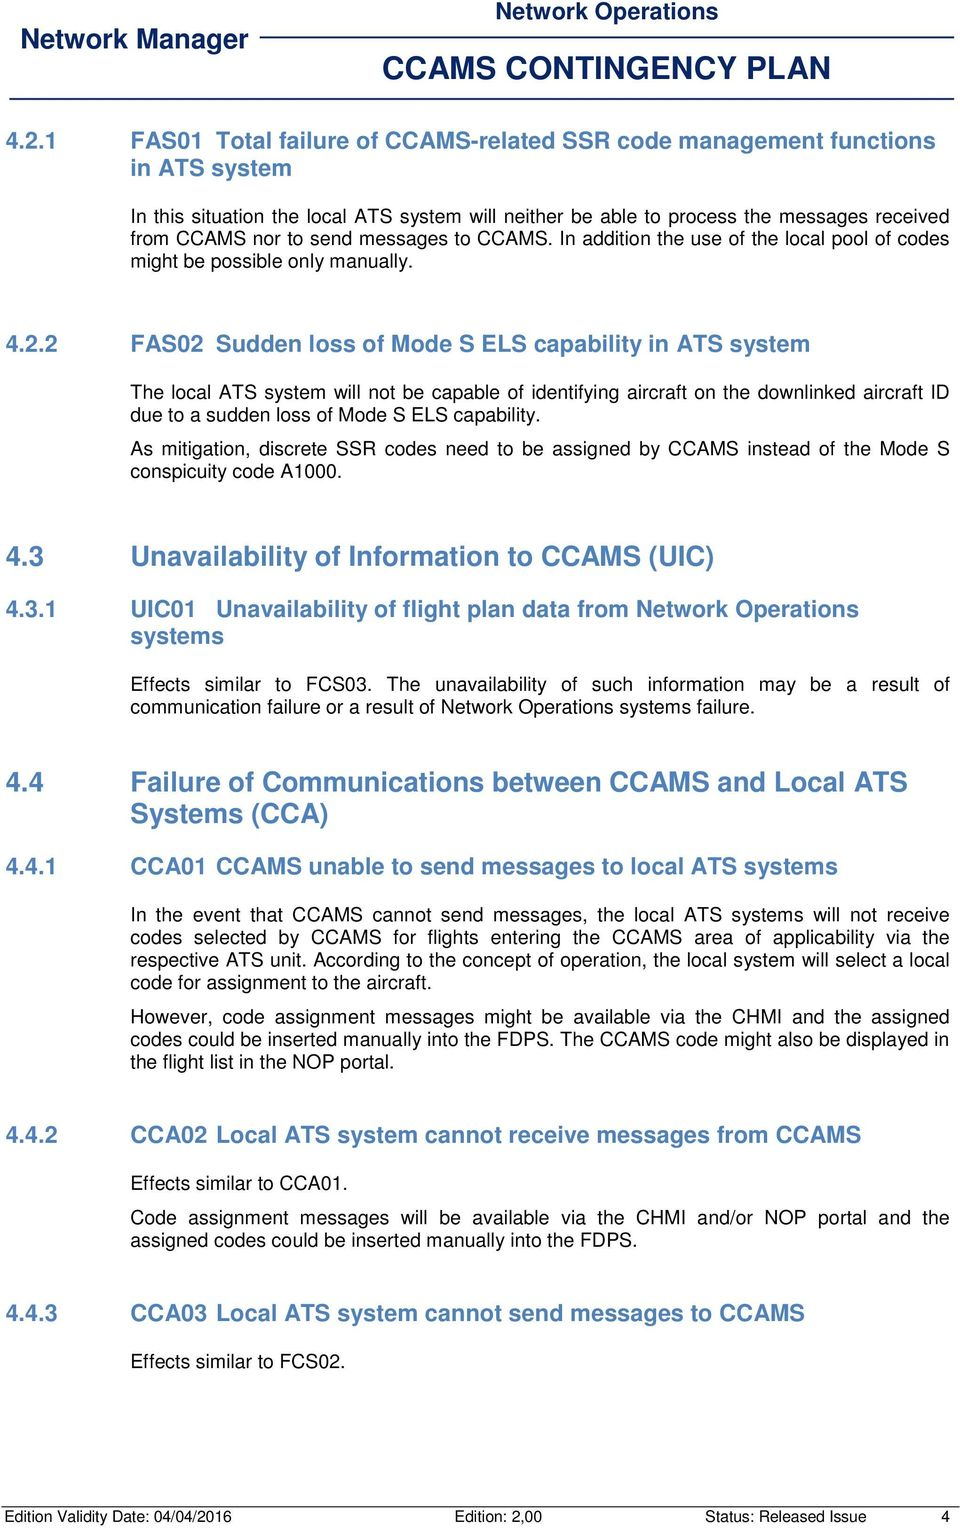 2 FAS02 Sudden loss of Mode S ELS capability in ATS system The local ATS system will not be capable of identifying aircraft on the downlinked aircraft ID due to a sudden loss of Mode S ELS capability.